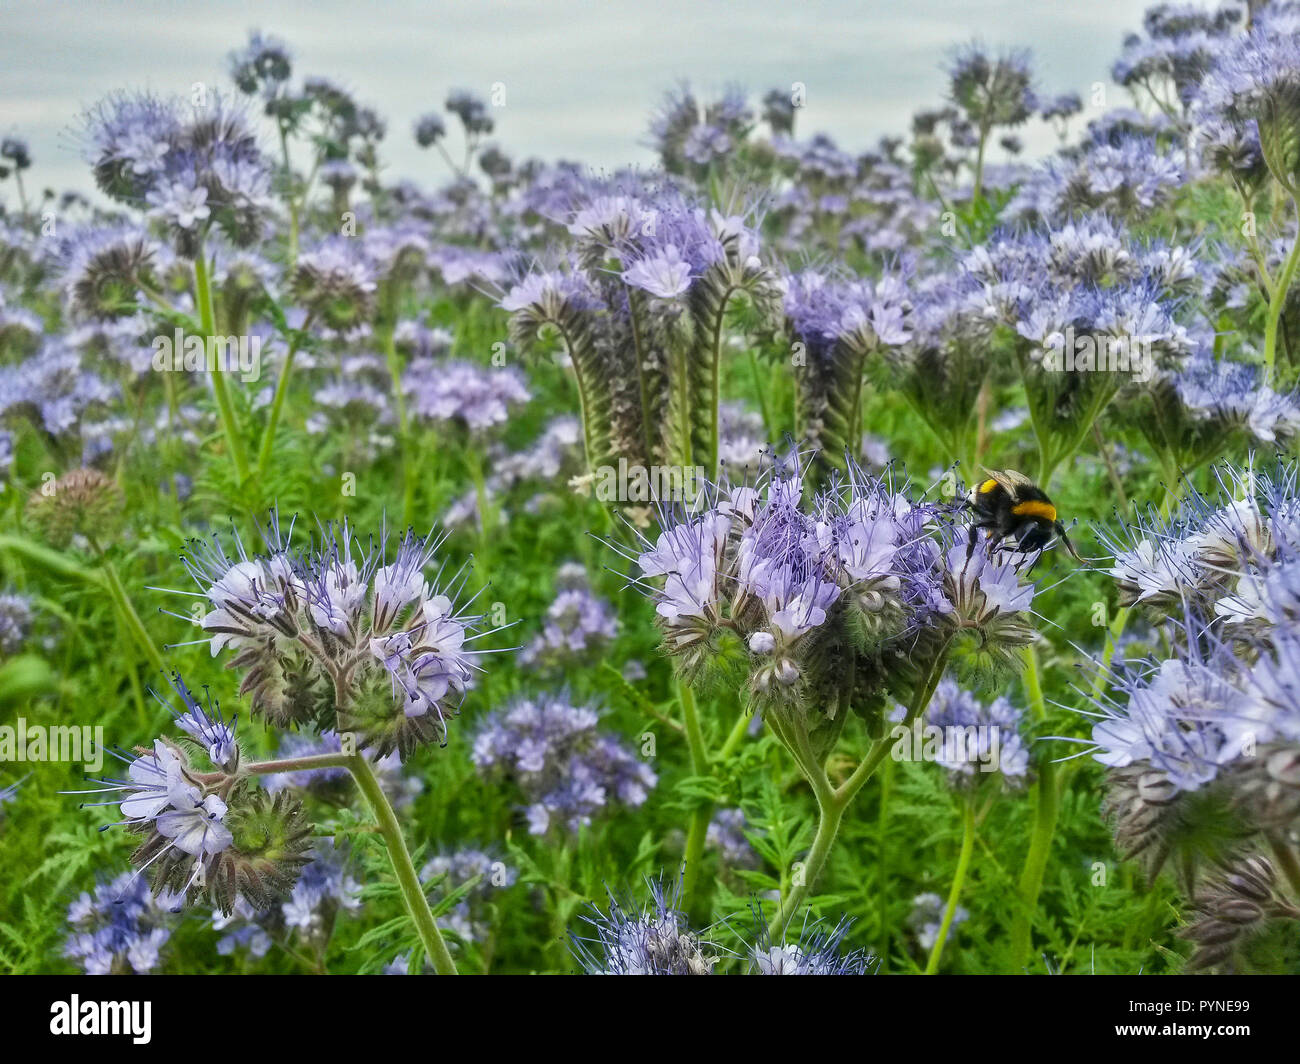 Buff-tailed bumble bee (Bombus terrestris) on Scorpionweed (Phacelia tanacetifolia), Hesse, Germany - Stock Image